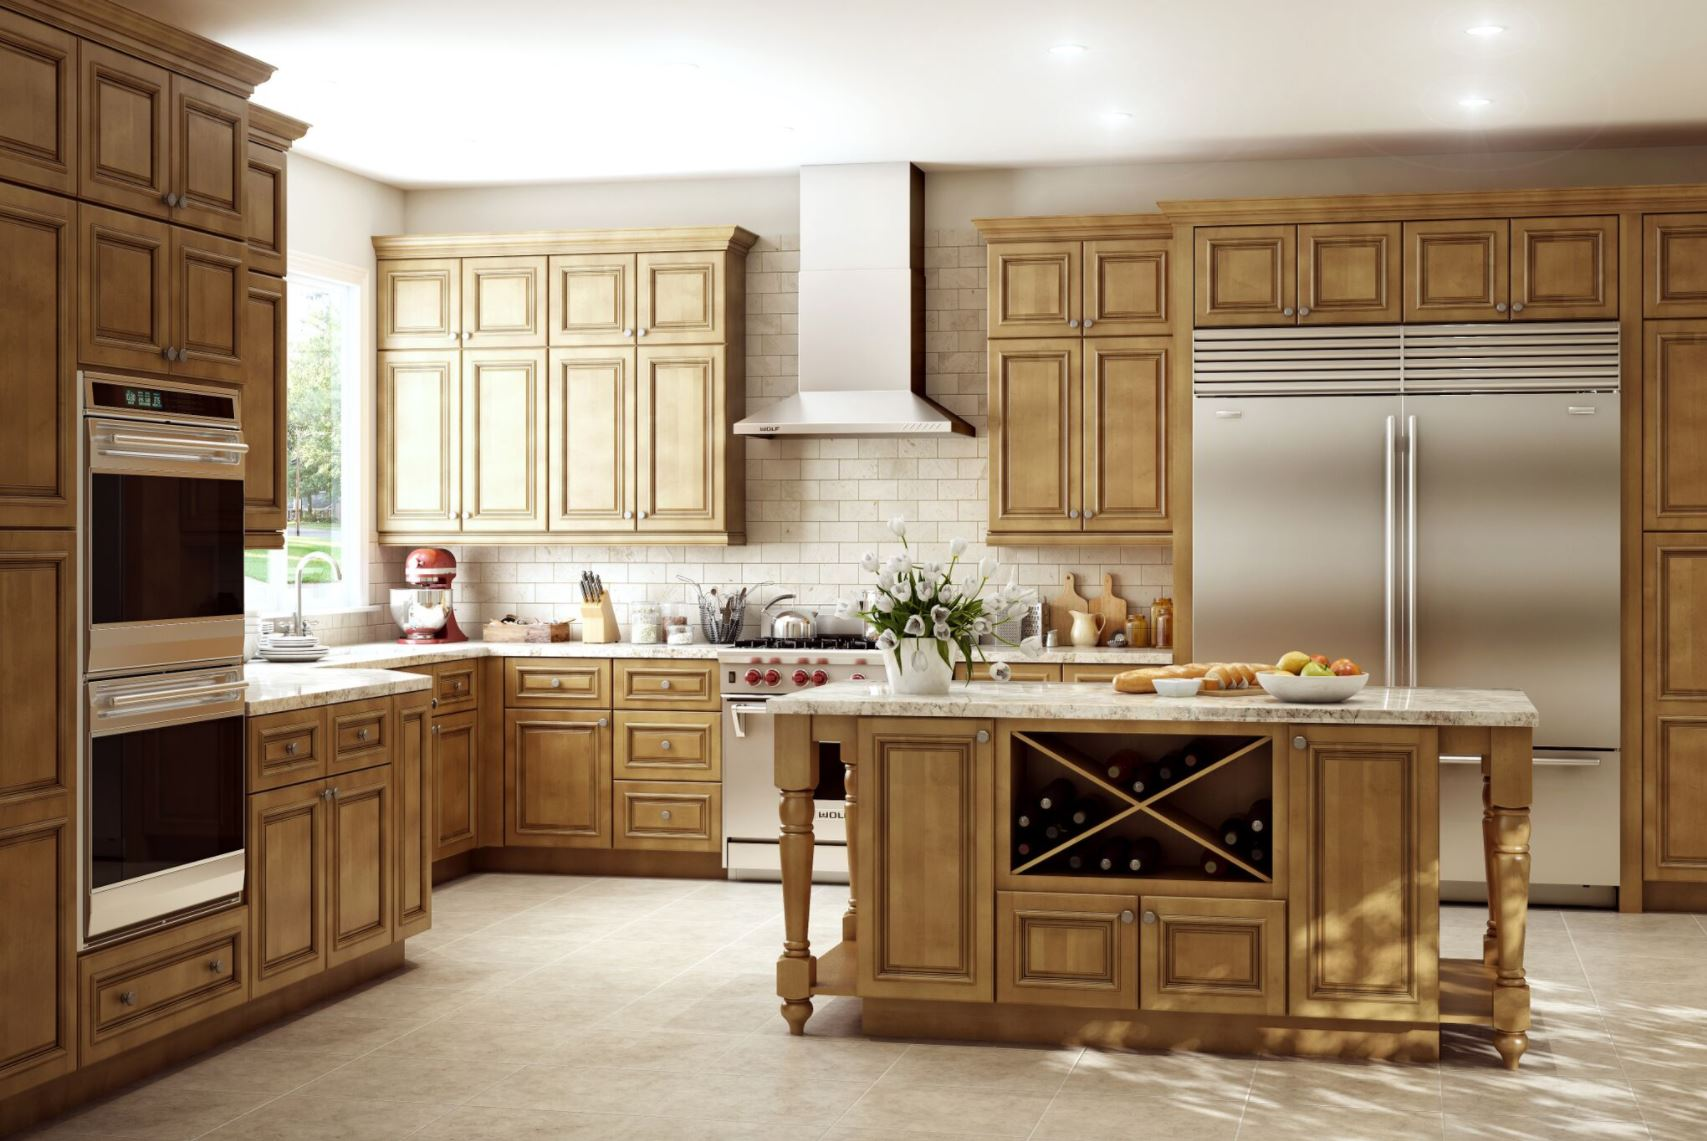 Glaze For Kitchen Cabinets Clevedon Base Cabinets In Toffee Glaze Kitchen The Home Depot